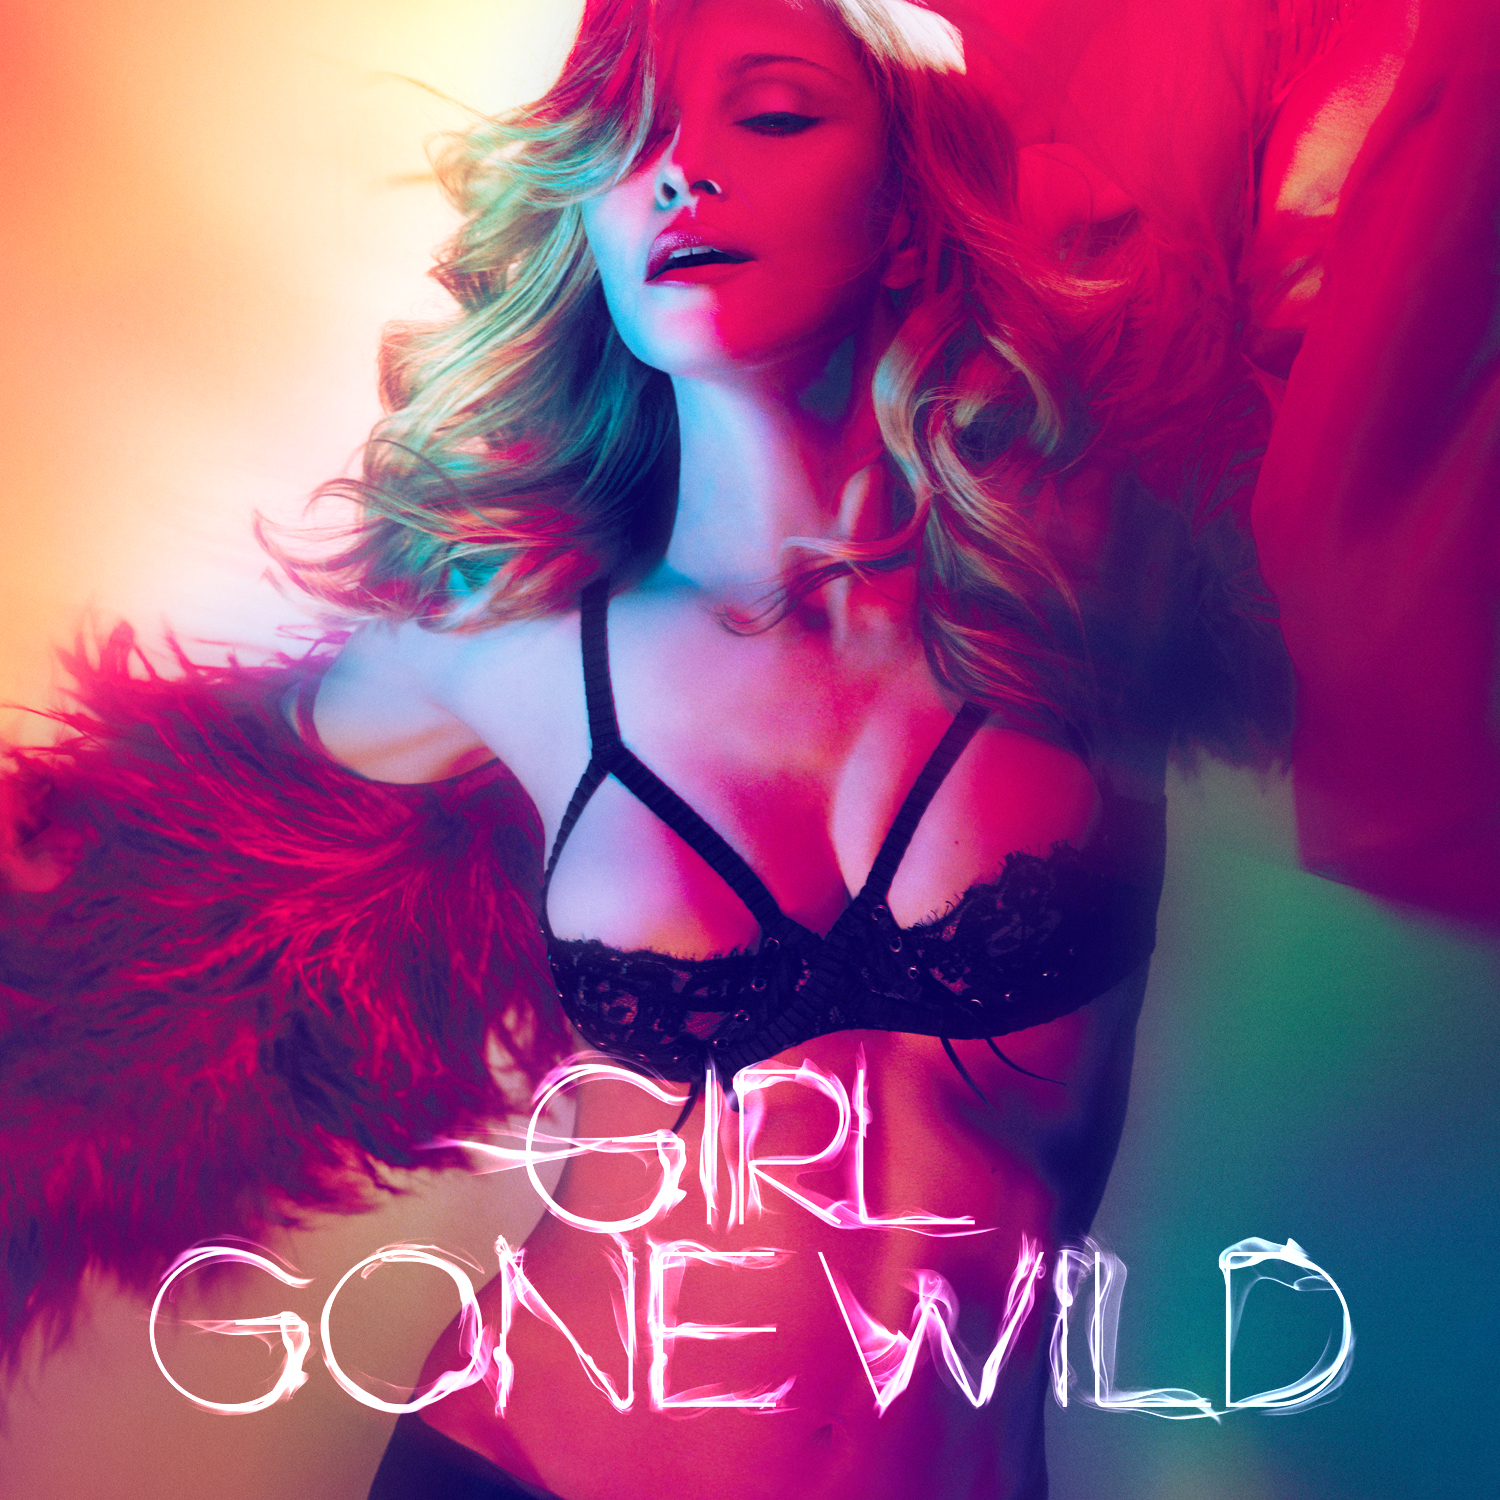 girl gone wild1 School.Girls.6.XXX.DVDRiP. Picture now loading, please wait.